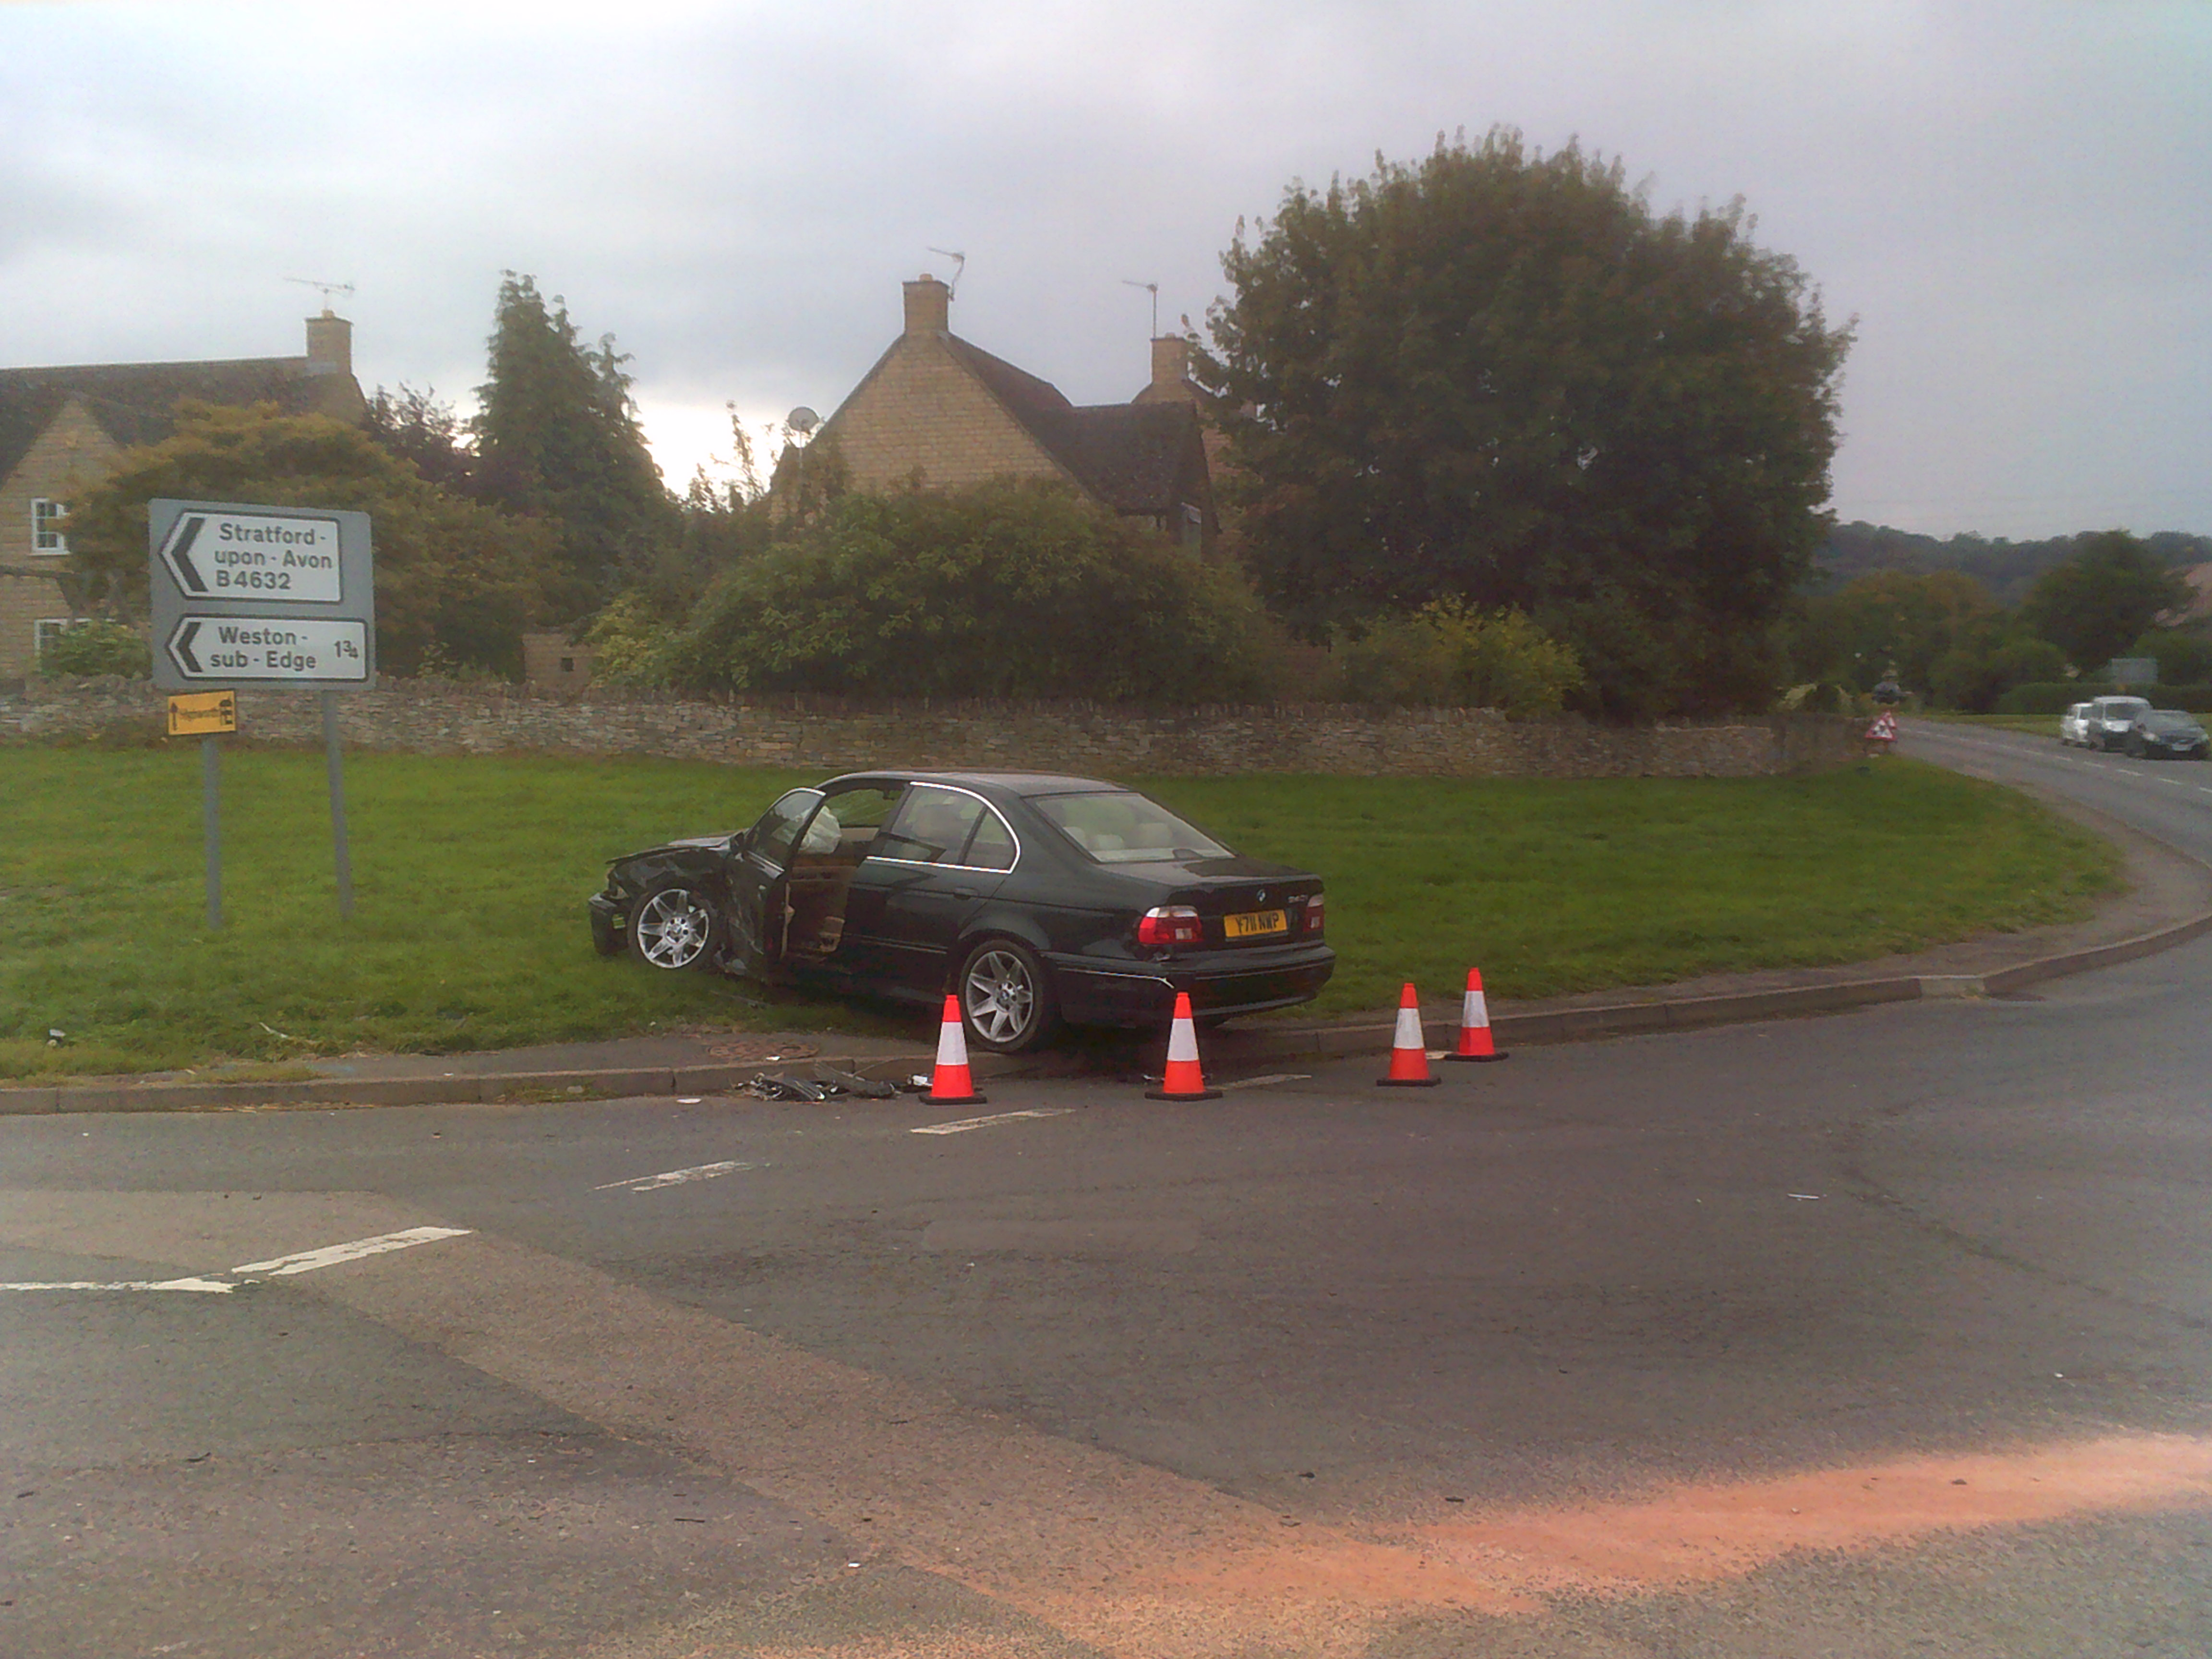 Wrecked car at Pike Roundabout in Willersey.